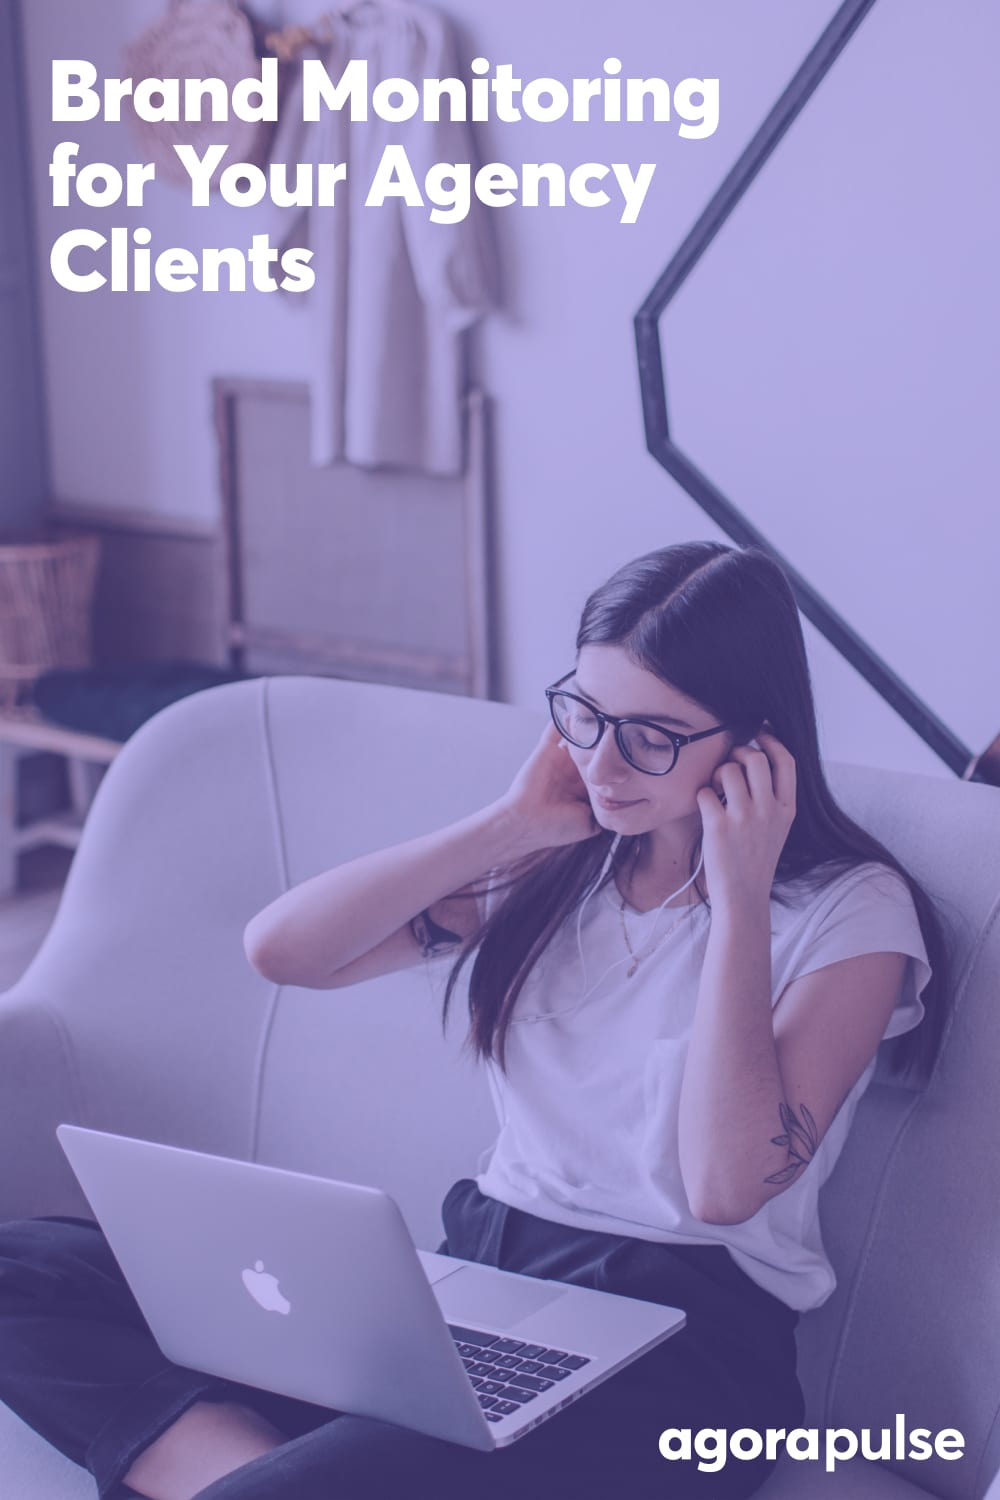 How to Do Brand Monitoring for Your Agency Clients